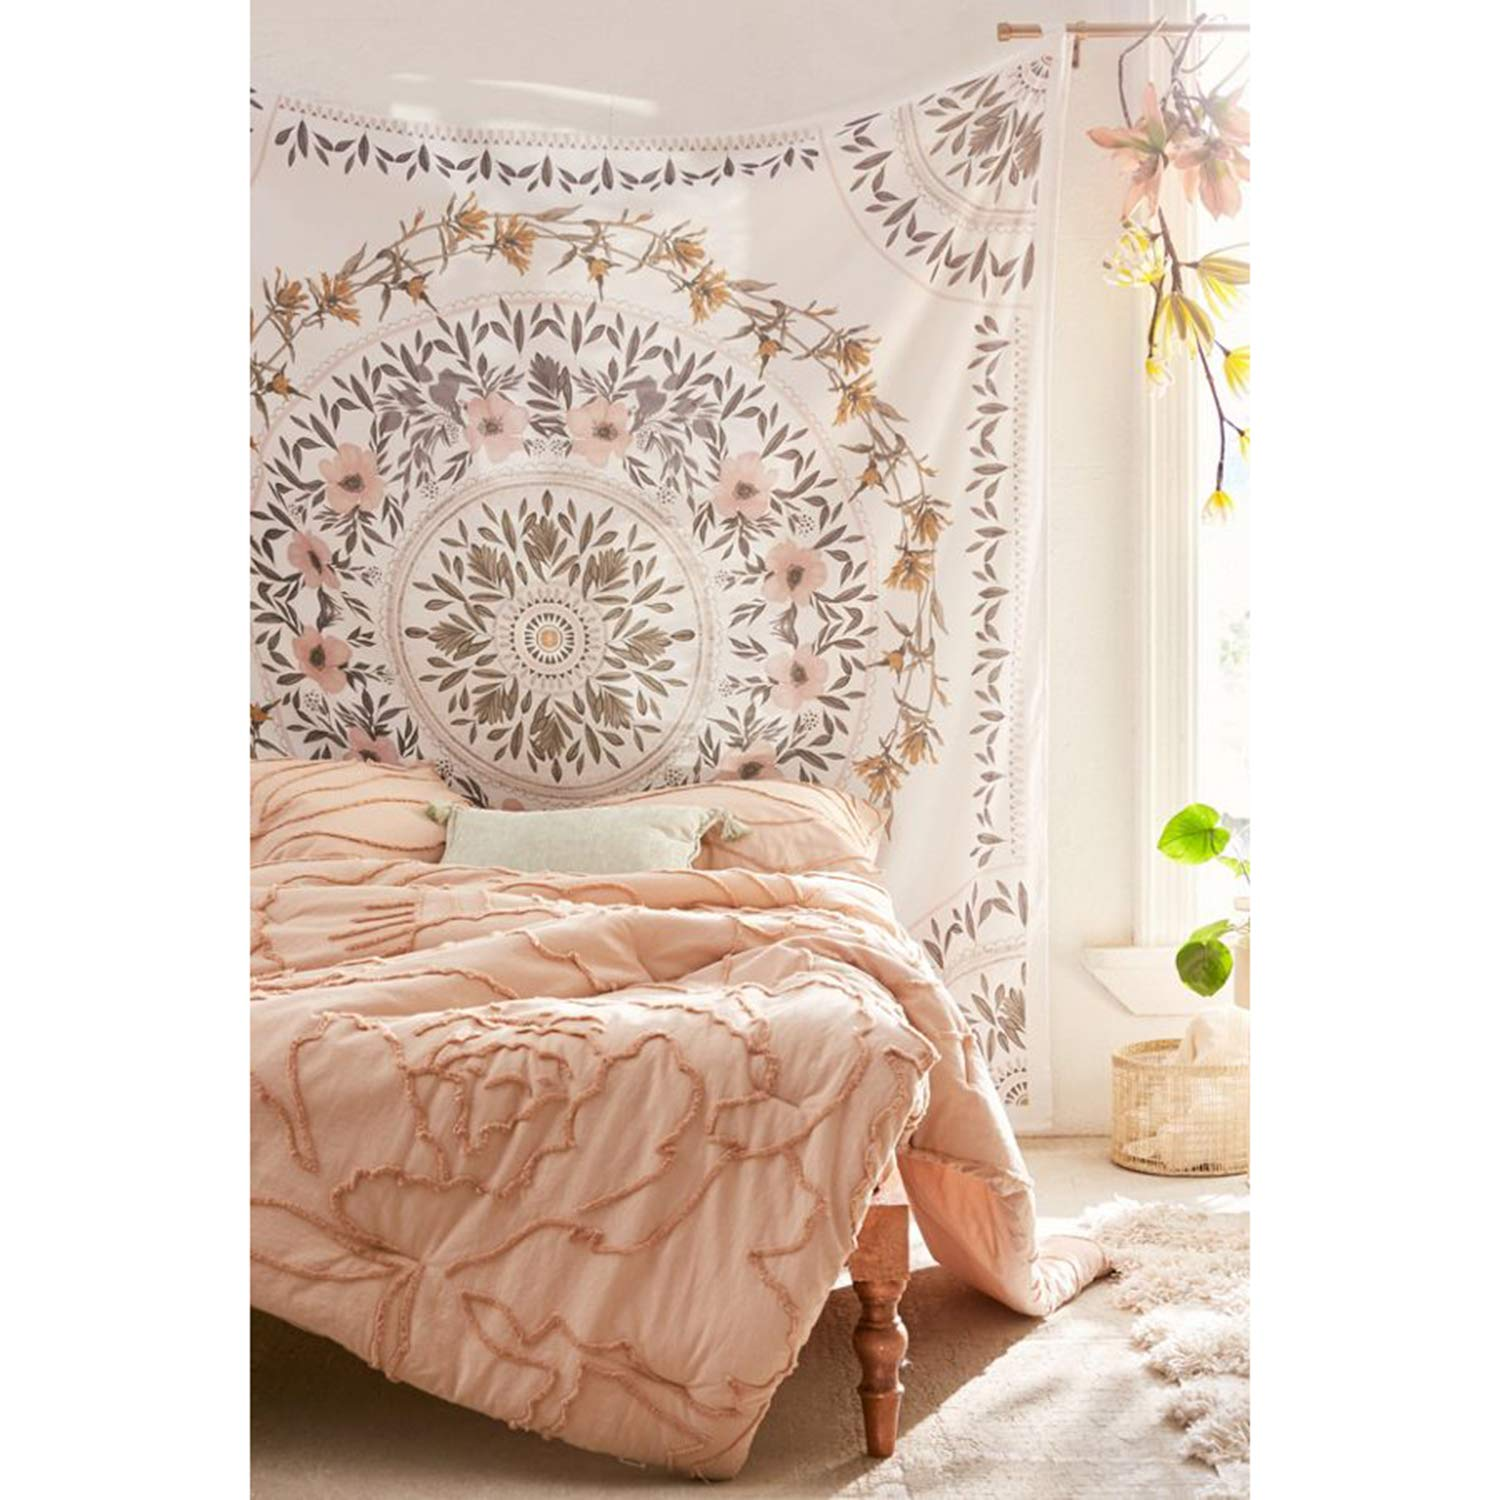 Simpkeely Sketched Floral Medallion Tapestry, Bohemian Mandala Wall Hanging Tapestries, Indian Art Print Mural for Bedroom Living Room Dorm Home Décor 59.1x80 Inches(Mauve)